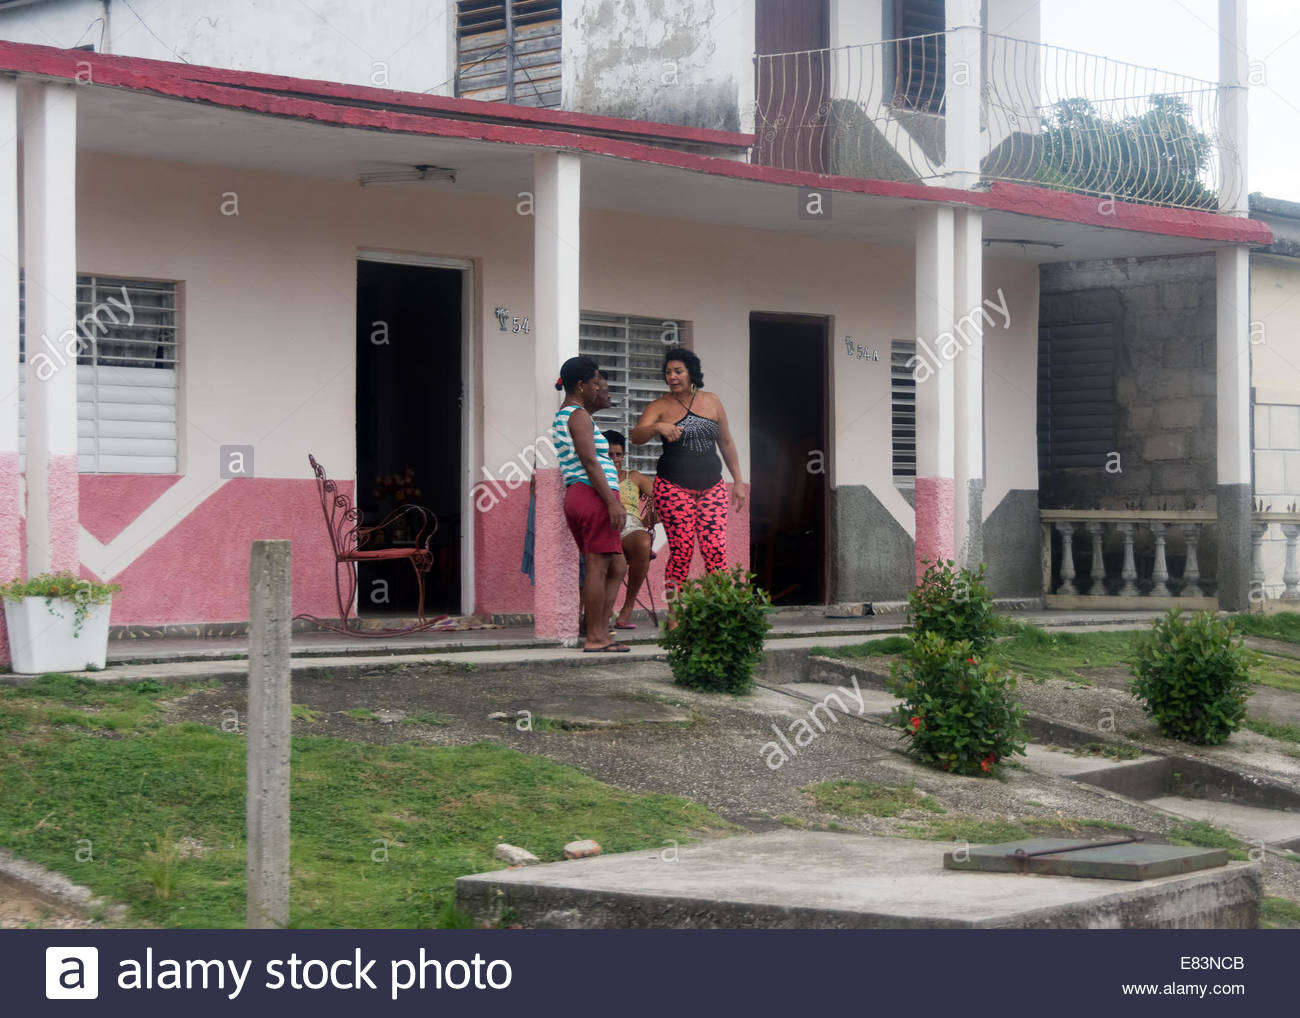 Cuban neighbors talking in front of their house during a Saturday afternoon - Stock Image